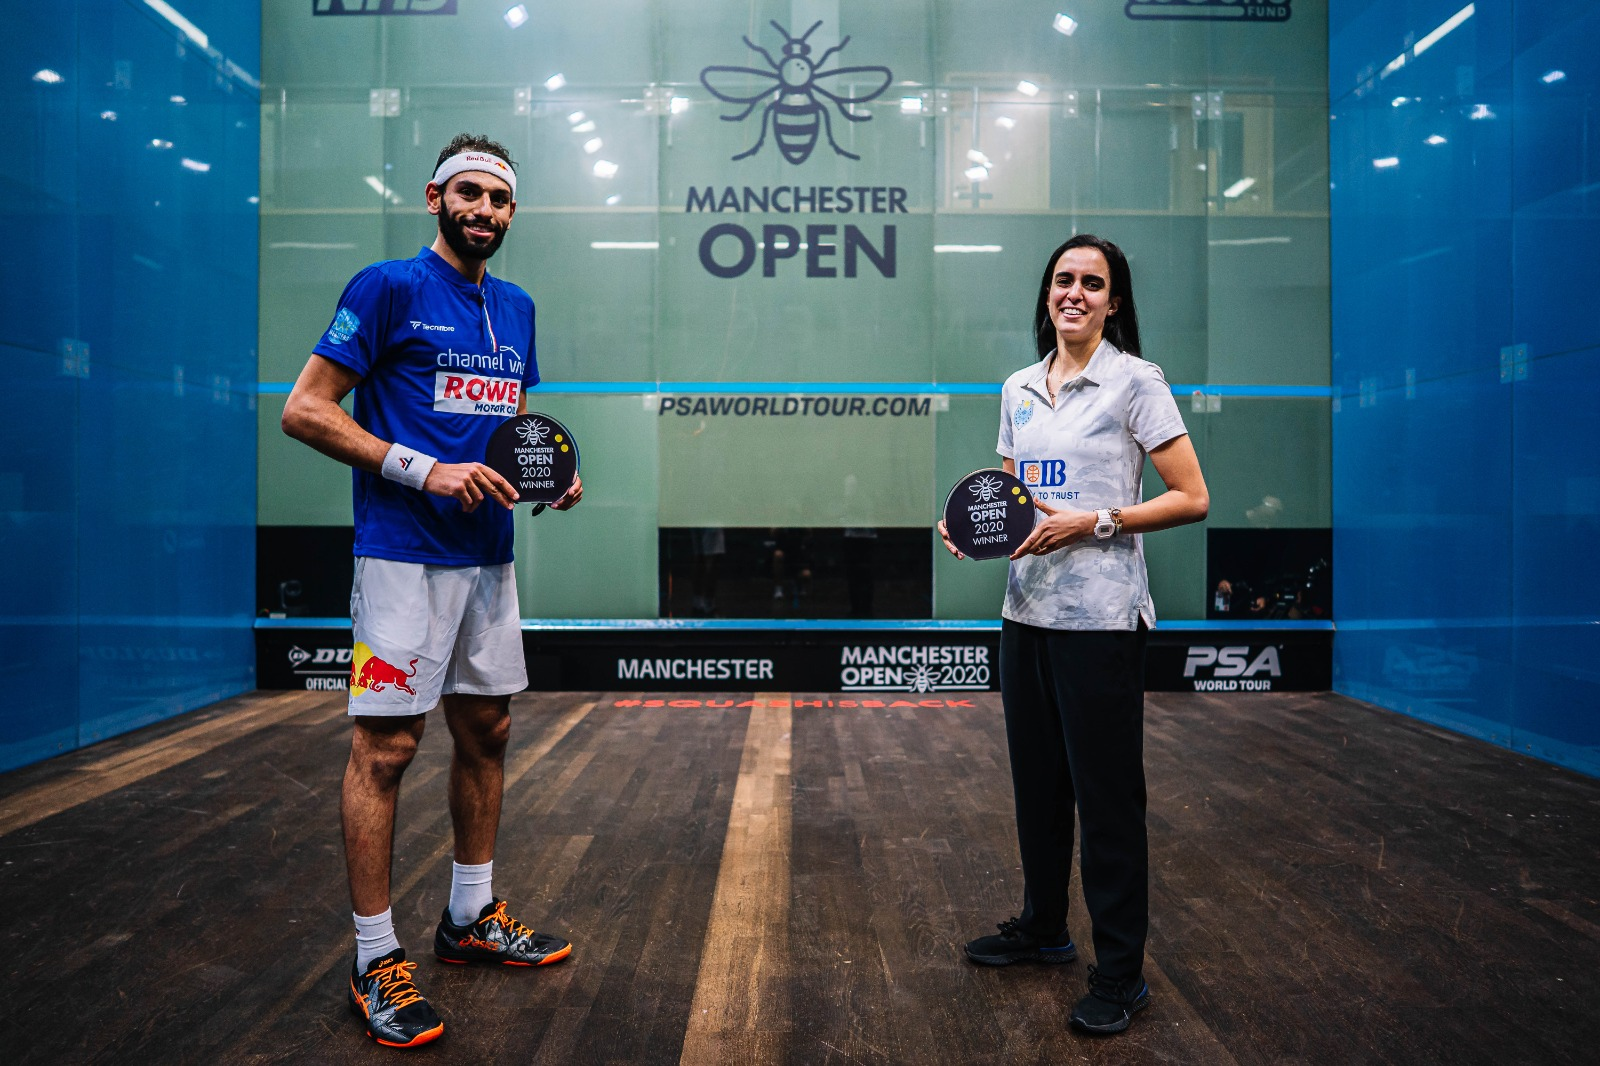 Mohamed ElShorbagy and Nour El Tayeb pose with the 2020 Manchester Open trophies